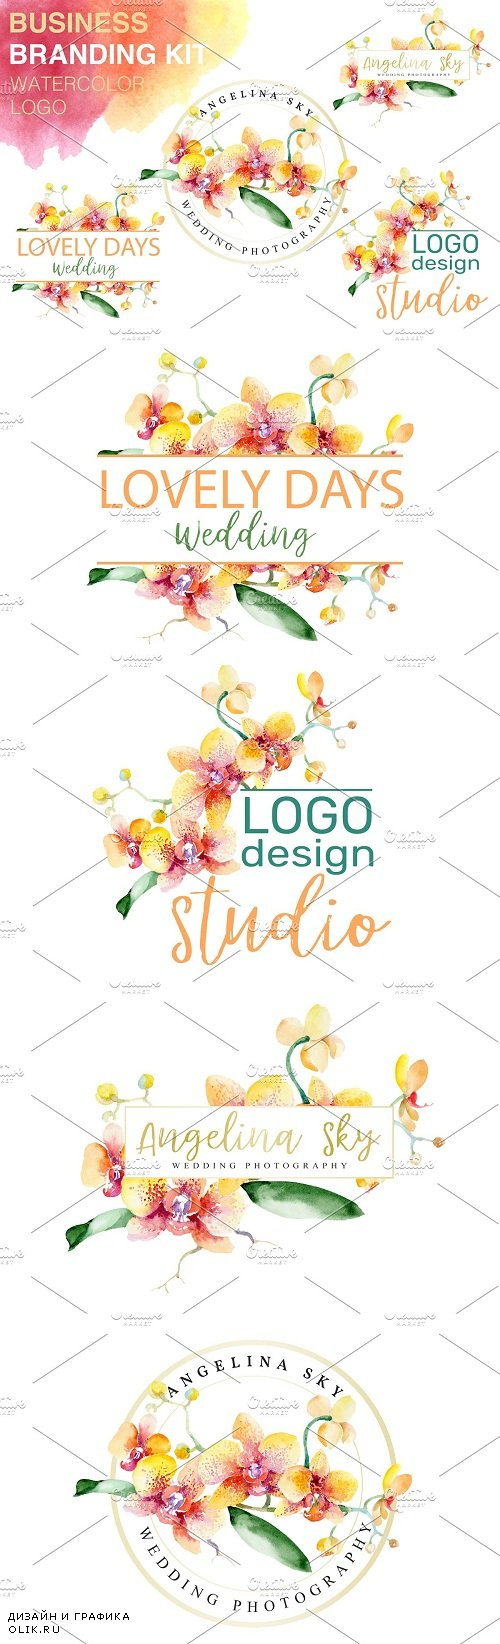 LOGO with beautiful orchids - 3736458